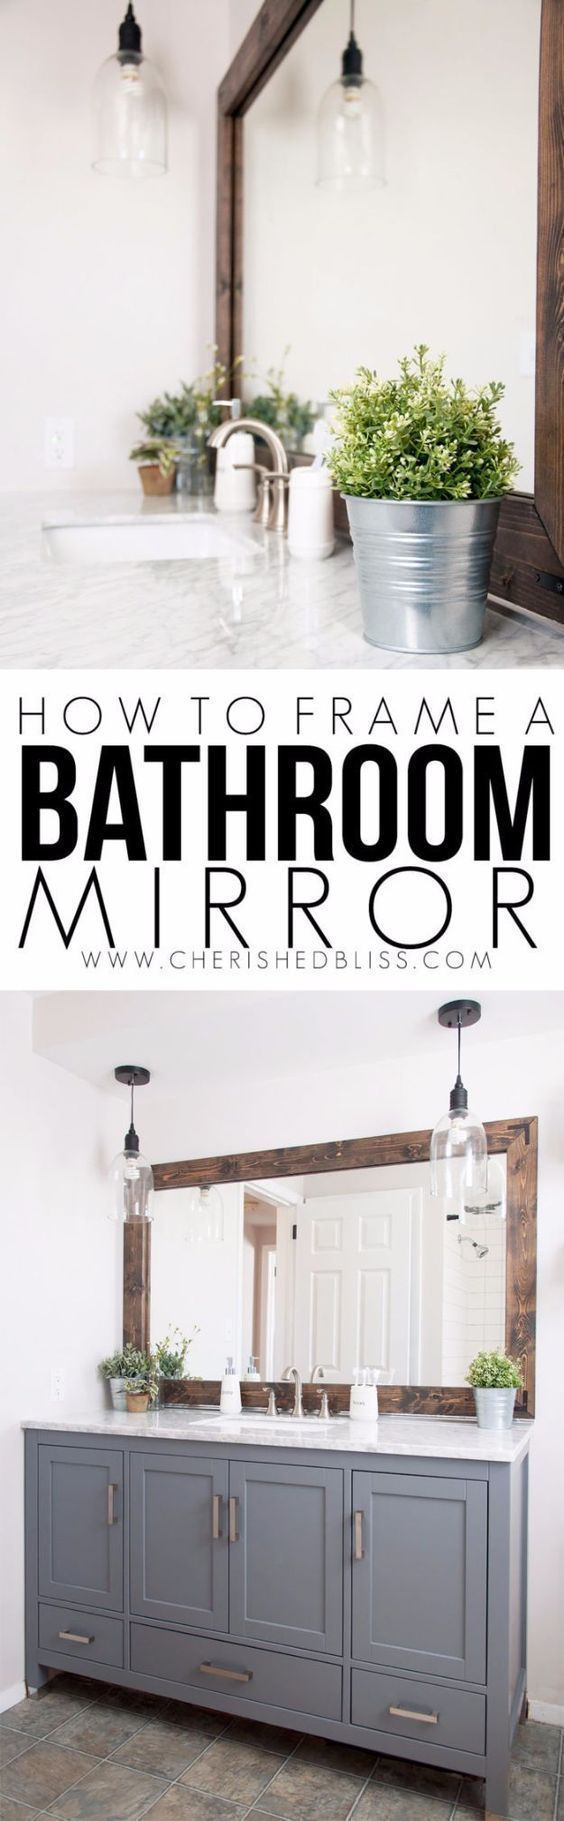 DIY Remodeling Hacks - Frame a Bathroom Mirror - Quick and Easy Home Repair Tips and Tricks - Cool Hacks for DIY Home Improvement Ideas - Cheap Ways To Fix Bathroom, Bedroom, Kitchen, Outdoor, Living Room and Lighting - Creative Renovation on A Budget - D #kitchenrenovations #homeremodelingdiy